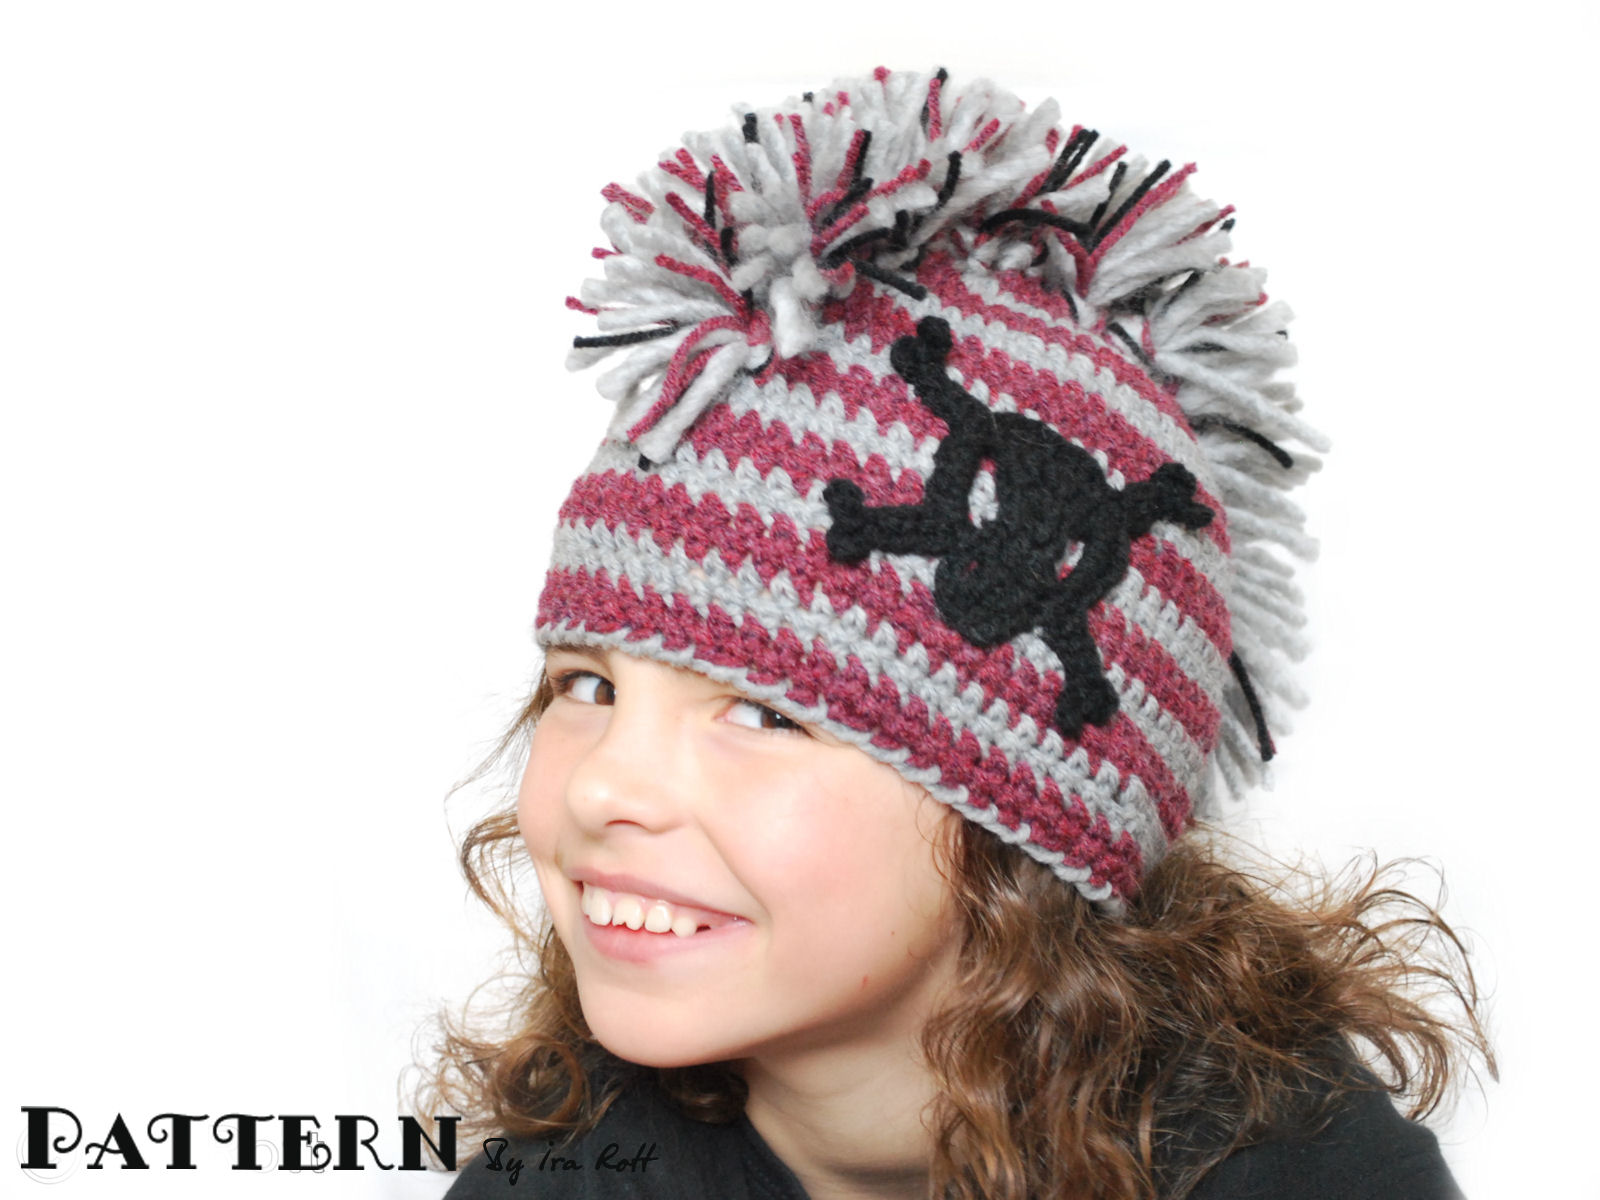 Fashion crochet design by ira rott skull and crossbones pirate skull and crossbones pirate beanie hat with mohawk crochet pattern bankloansurffo Gallery